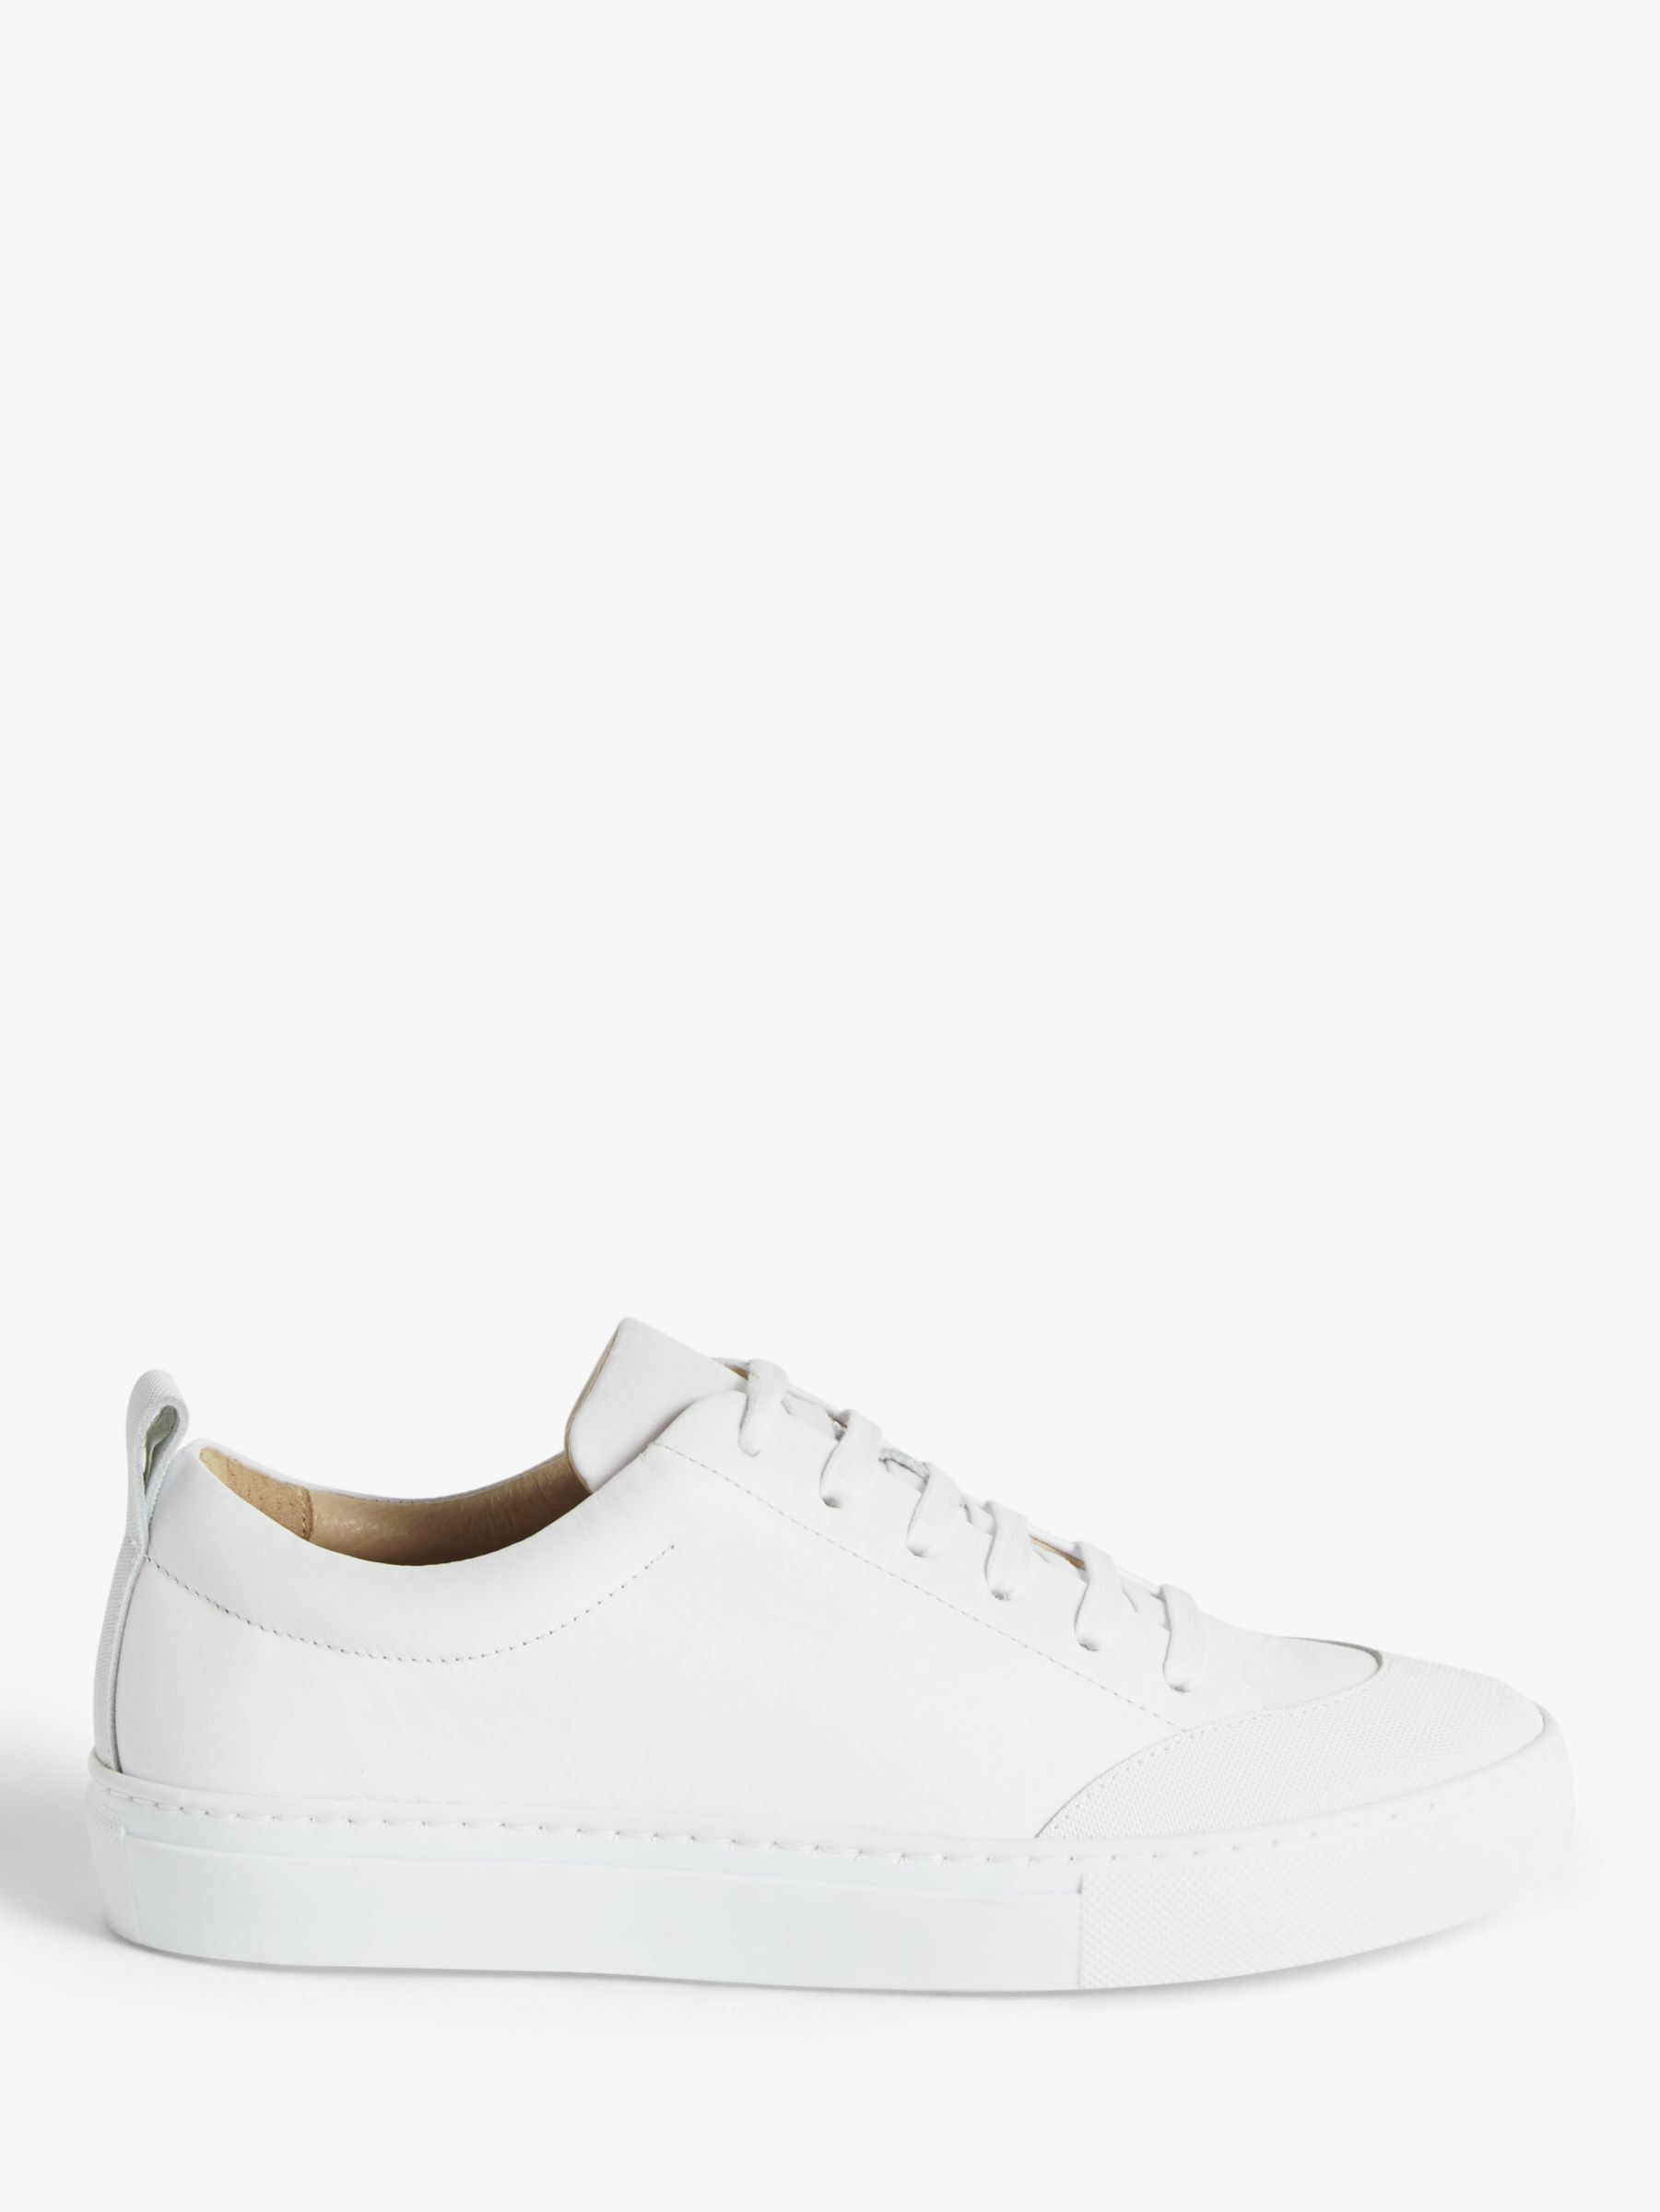 John Lewis & Partners Felicity Leather Trainers in 2020